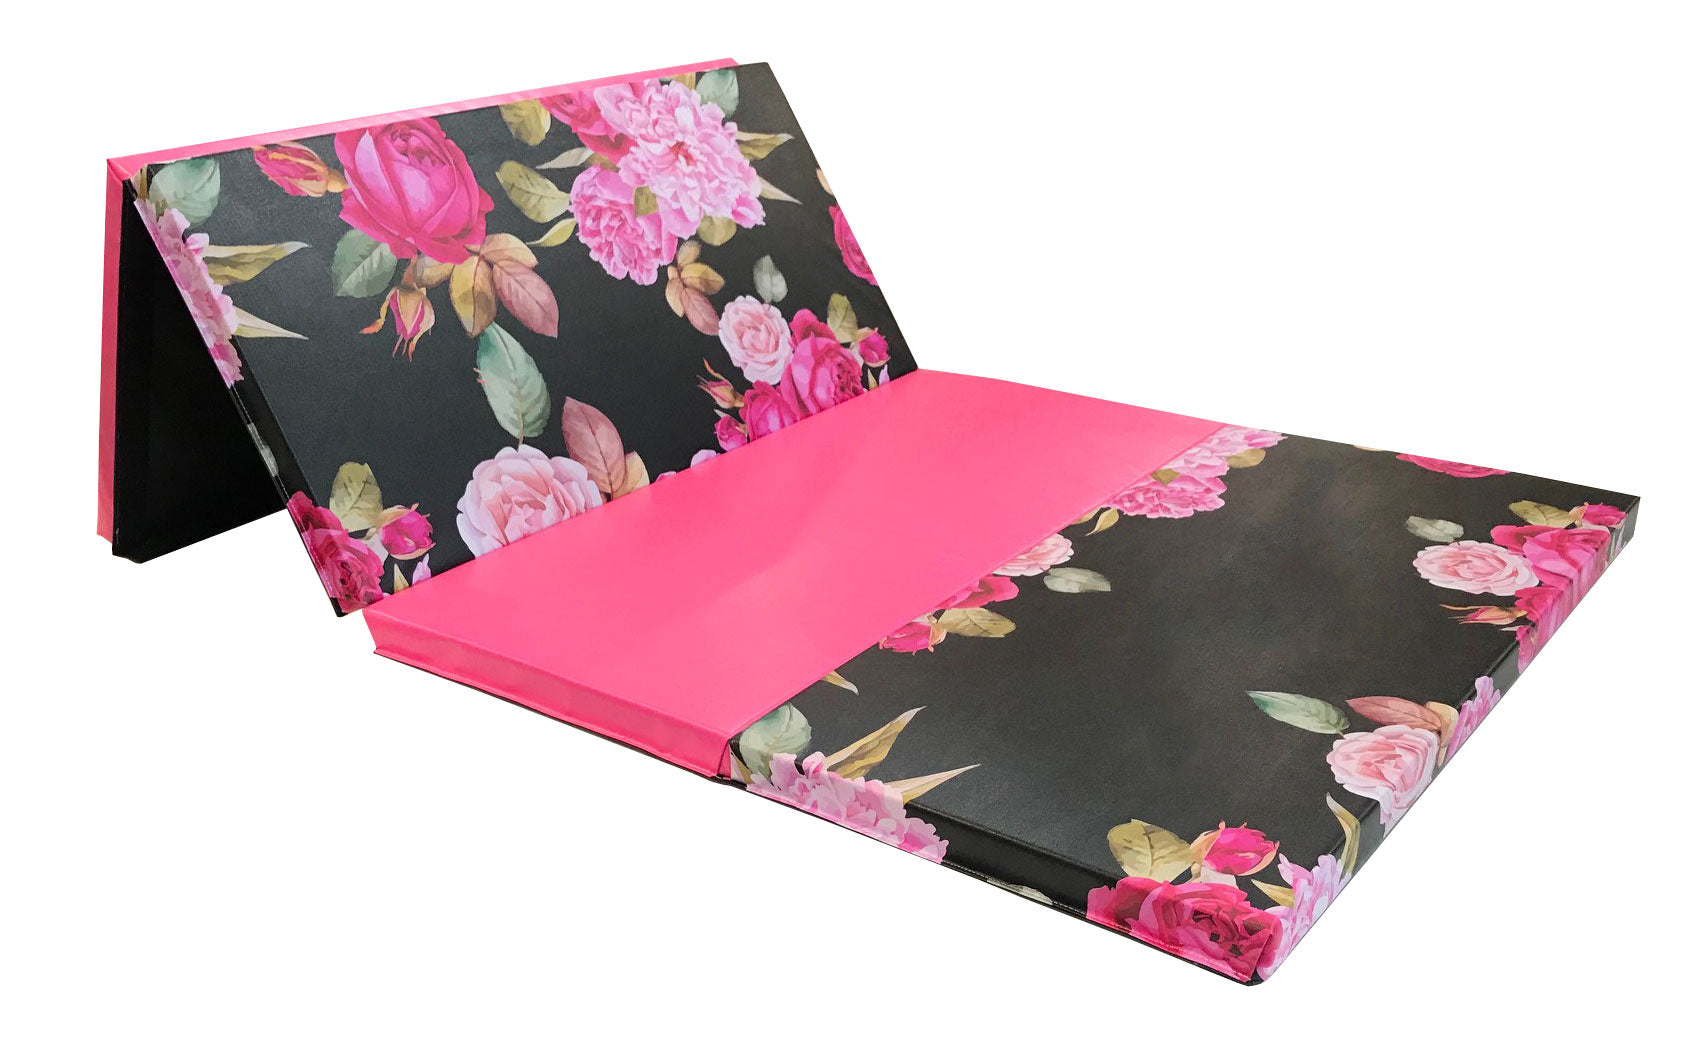 Black and Pink Peony 4' x 8' Folding Gymnastics Mat